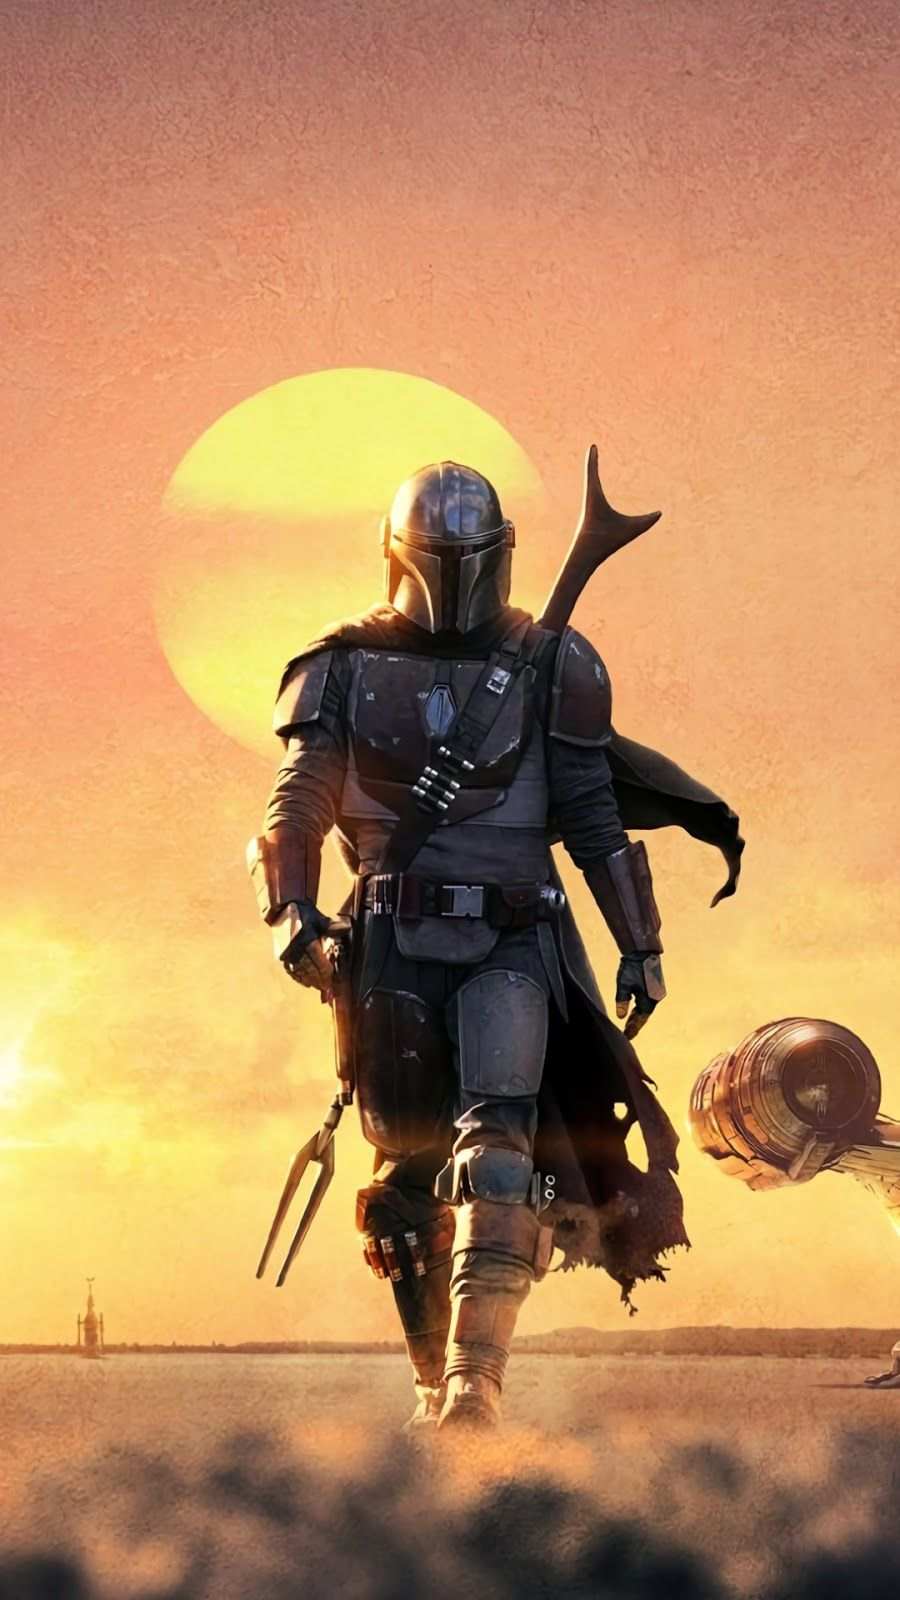 Tv Show The Mandalorian Mobile Wallpaper Star Wars Images Star Wars Background Star Wars Wallpaper